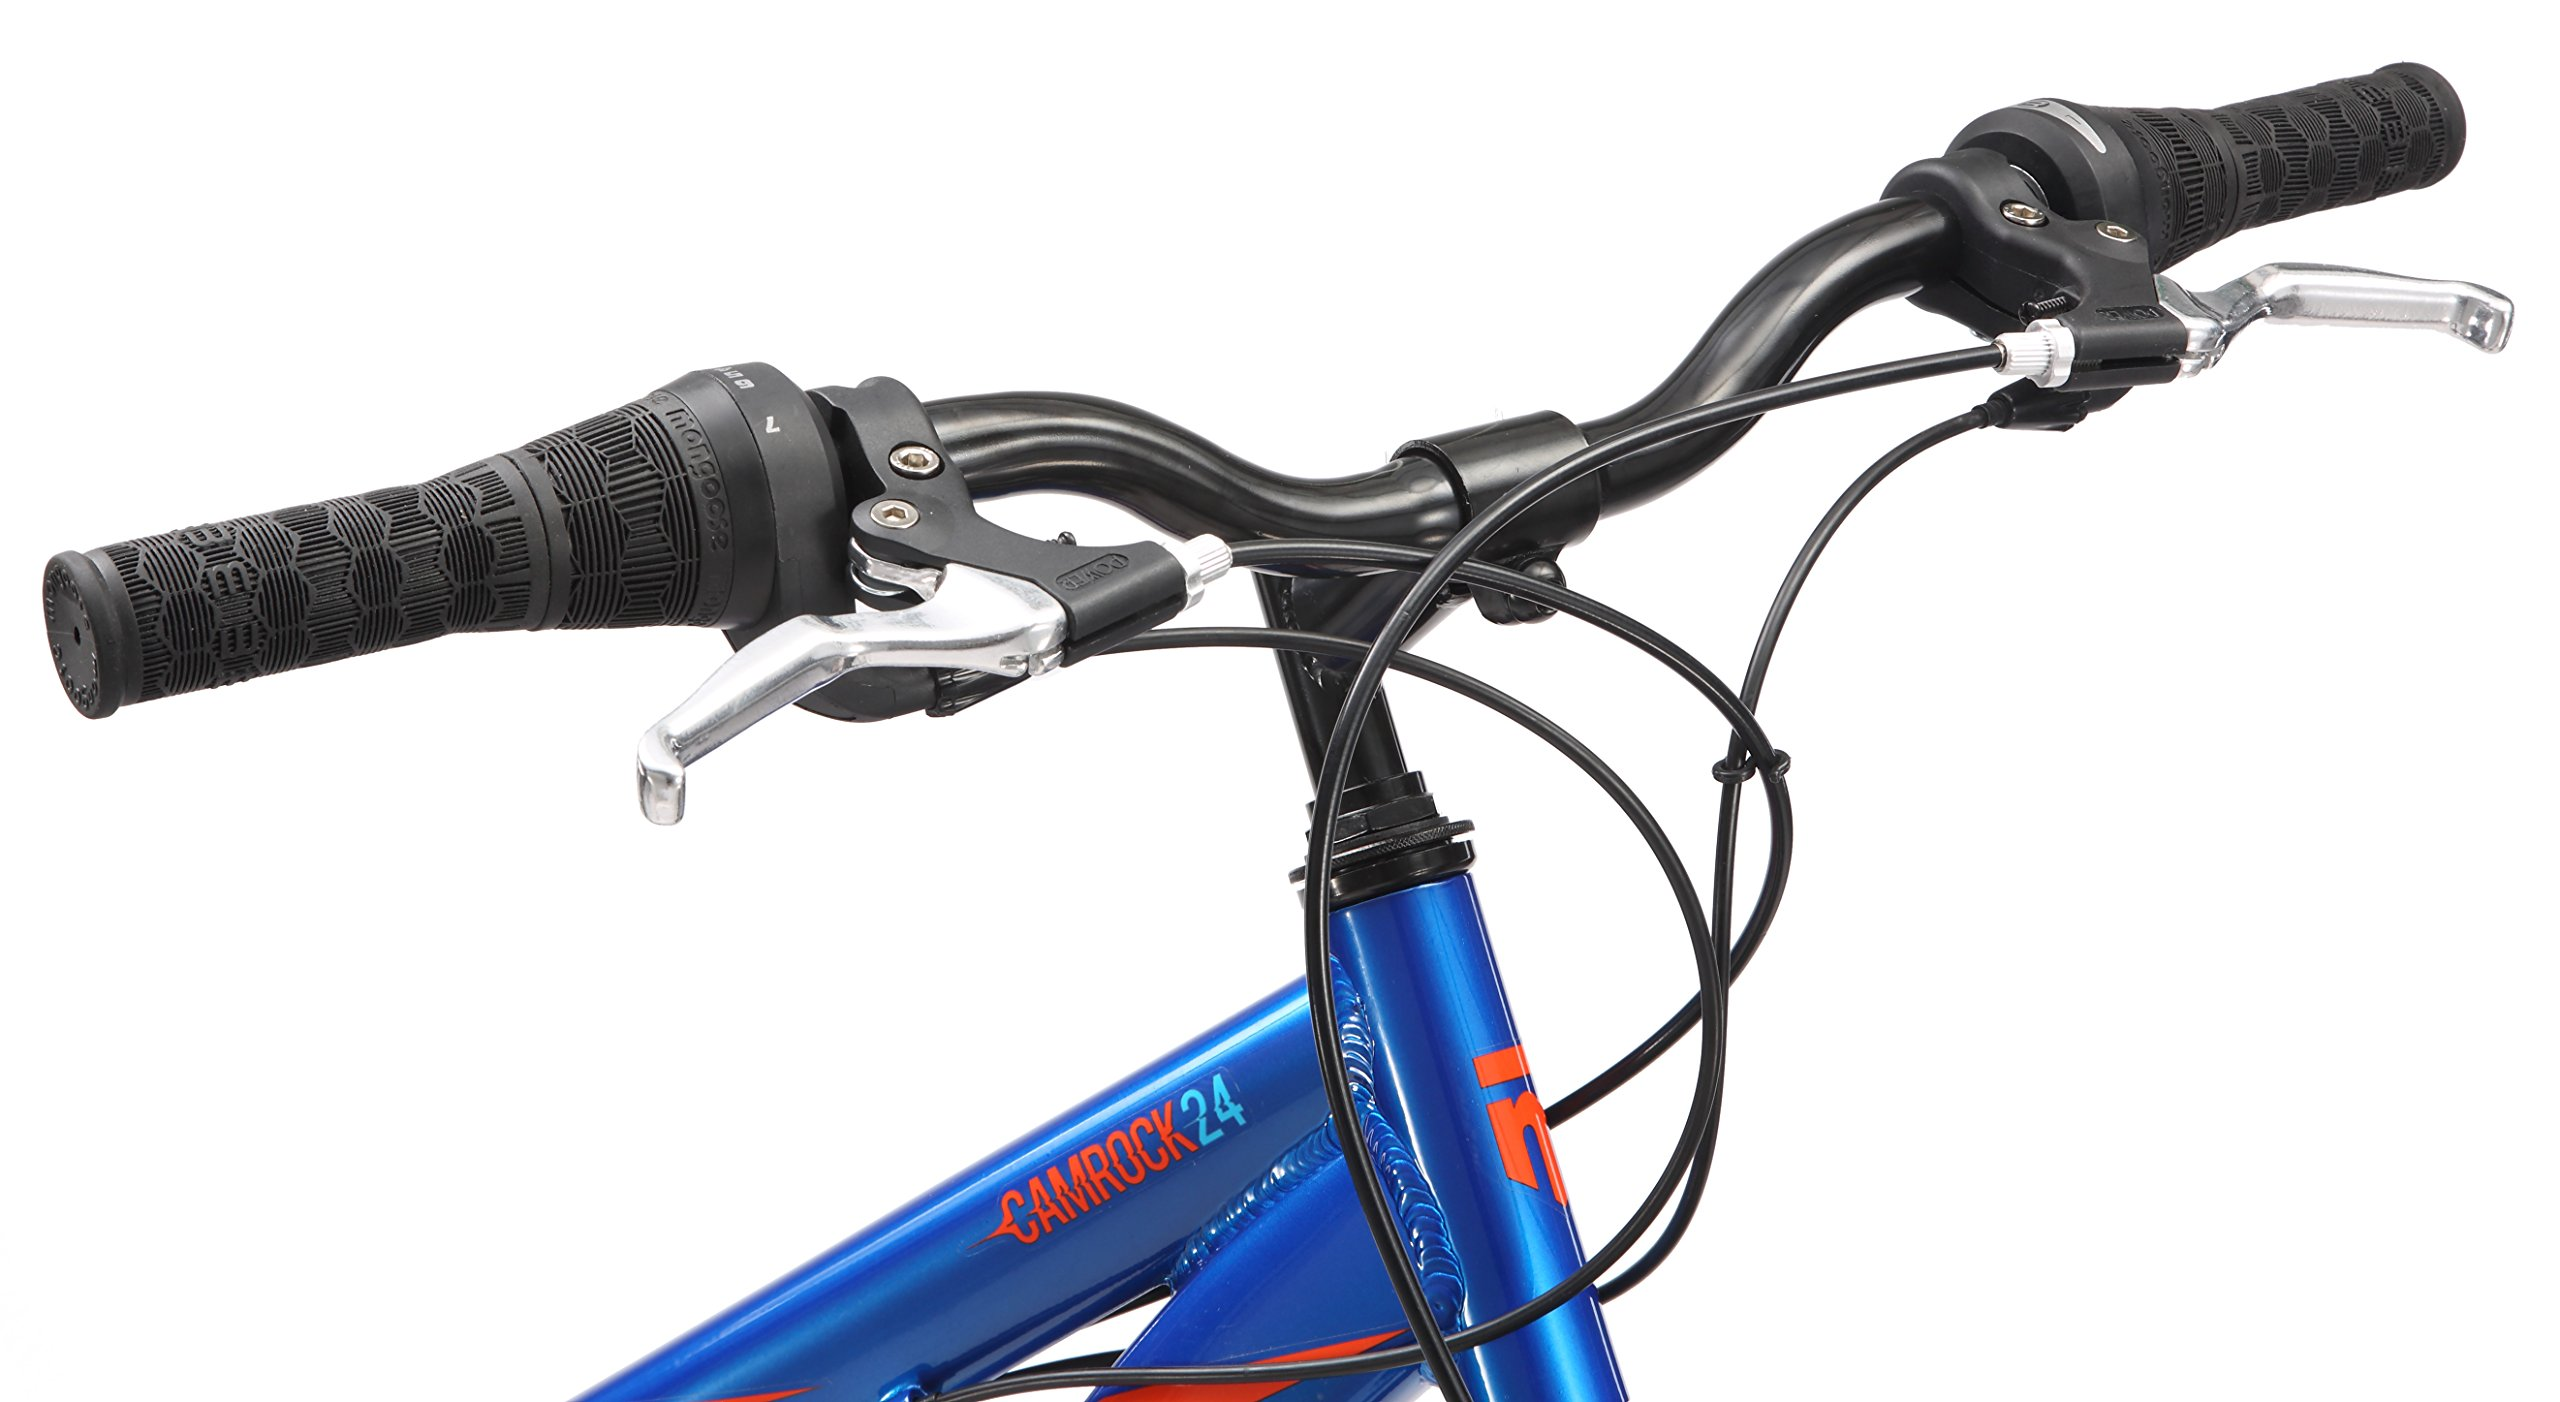 Mongoose Camrock 24'' Wheel Mountain Bicycle, Blue, One Size by Mongoose (Image #4)